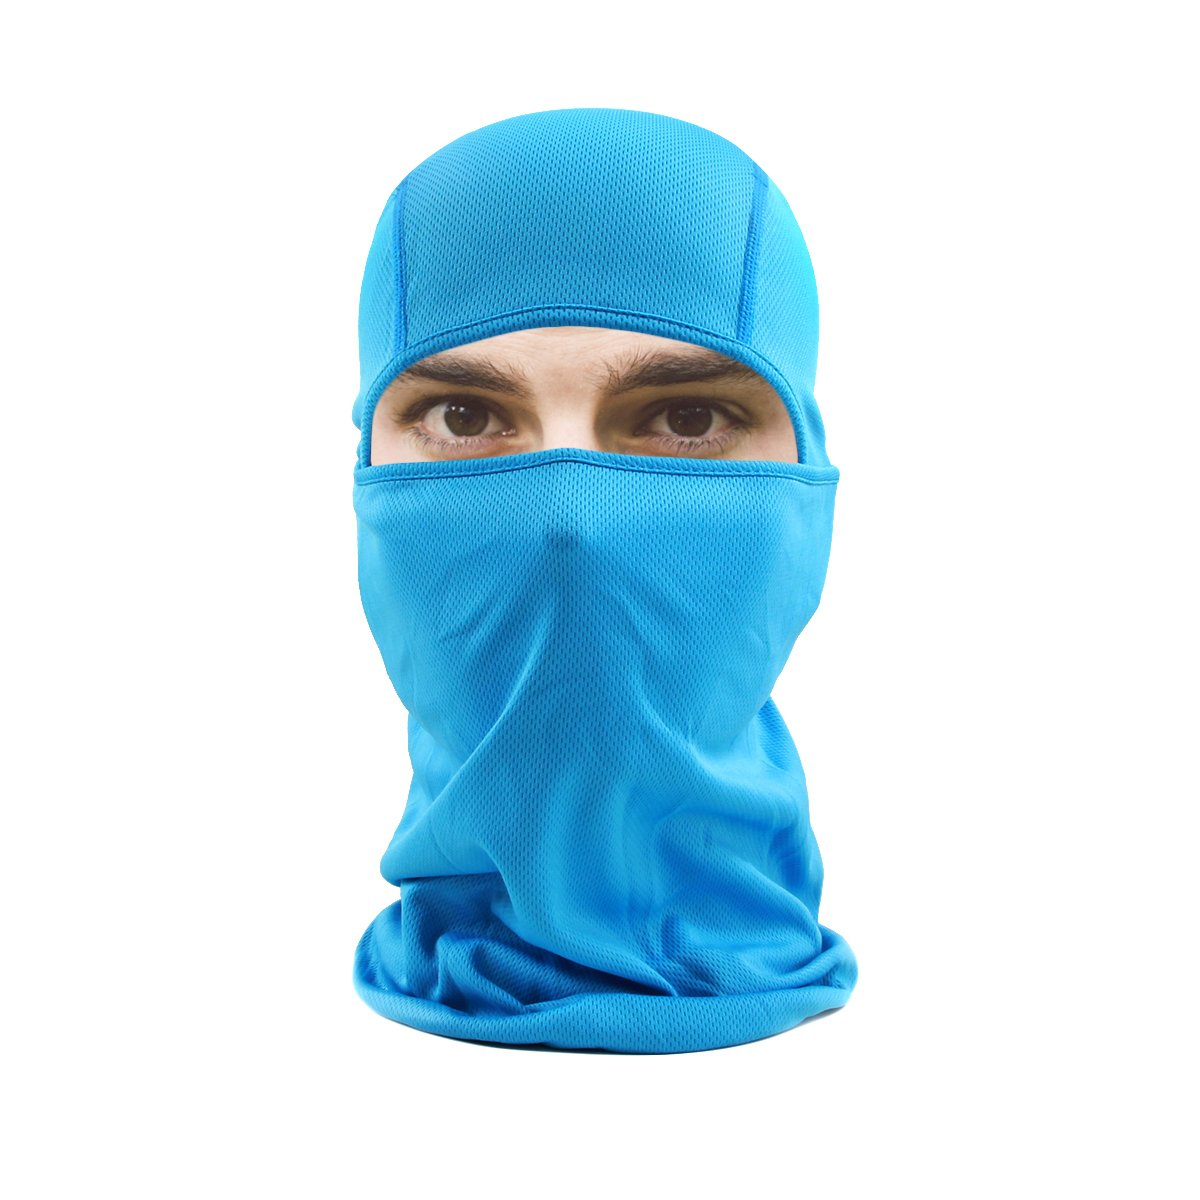 hikevalley Balaclava Face Mask, Adjustable Motorcycle Windproof UV Protection Breathable Unisex Hood Mask BEB001